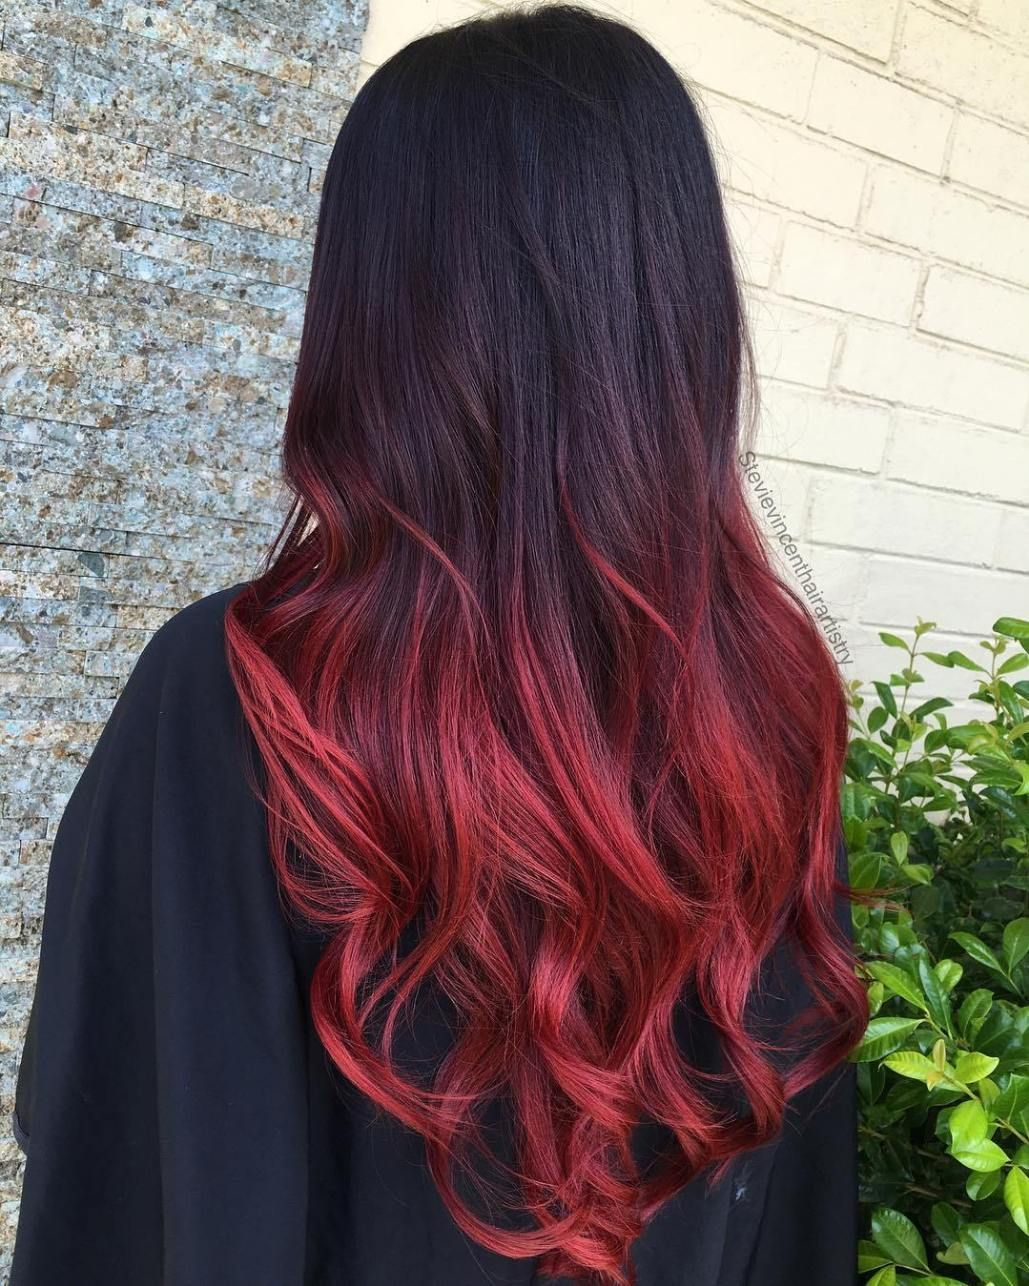 60 Best Ombre Hair Color Ideas For Blond Brown Red And Black Hair Black Hair Red Ombre Hair Color For Black Hair Black Hair Ombre